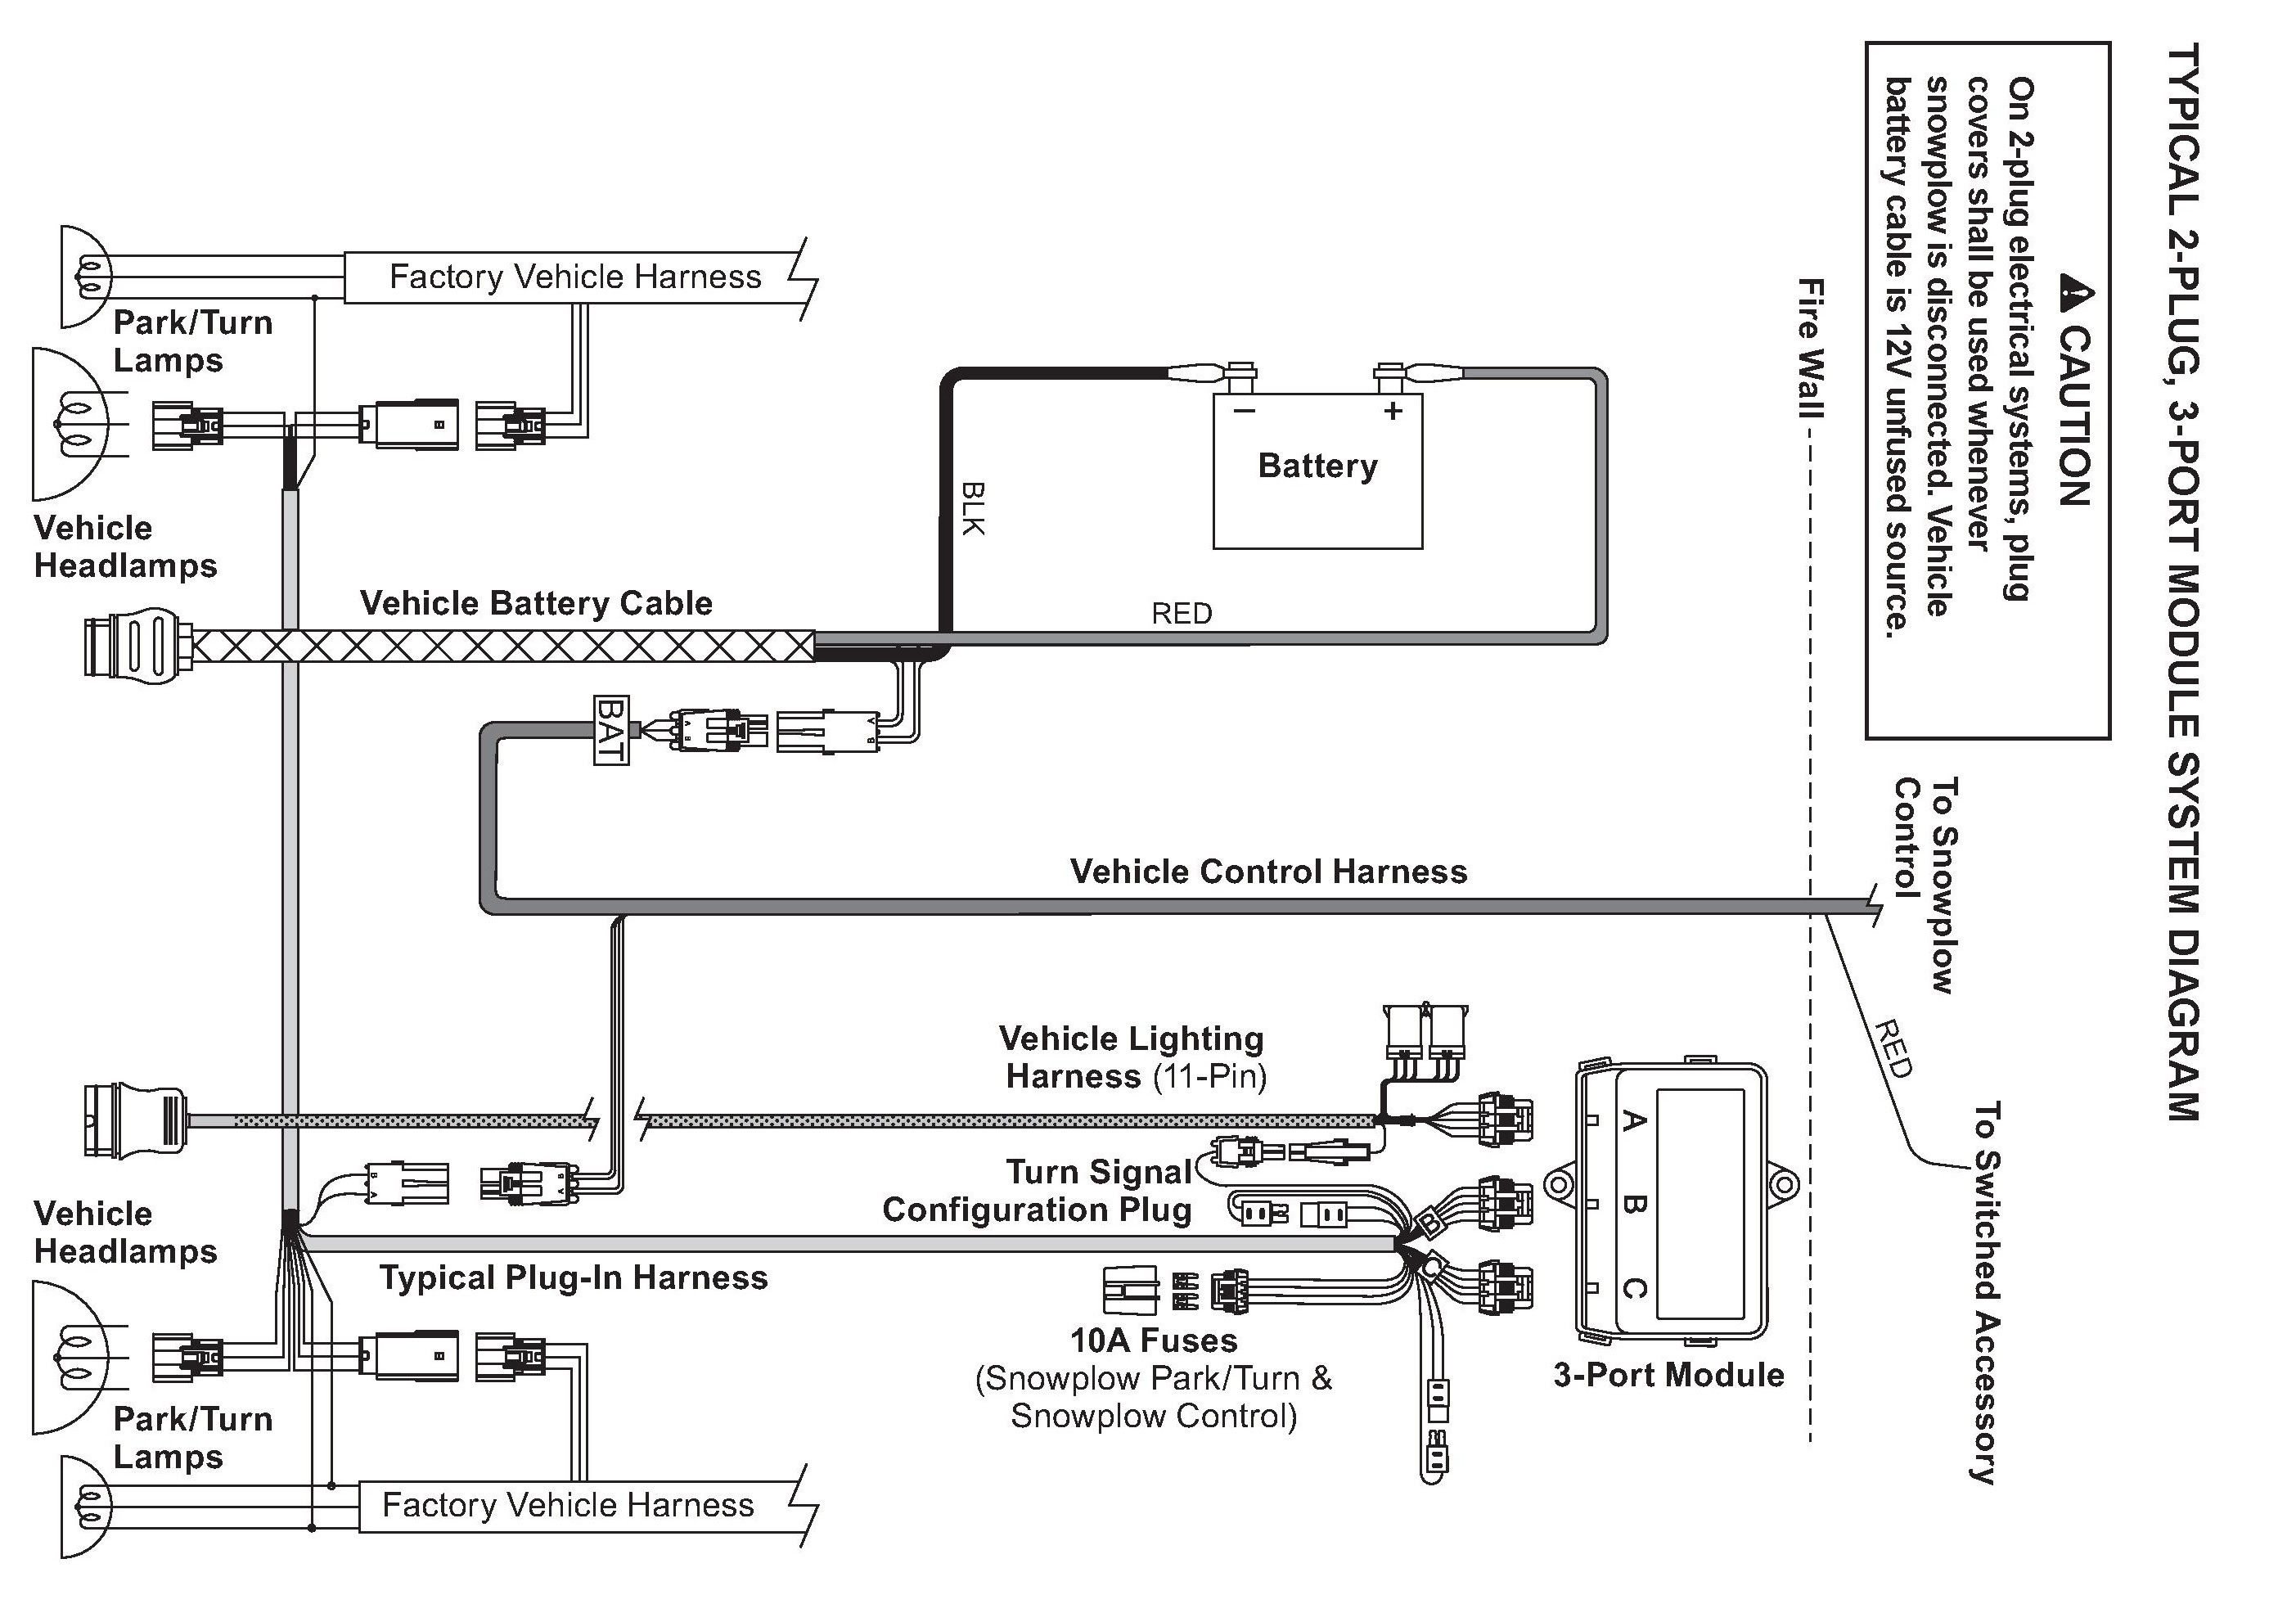 Meyer Snow Plow Light Wiring Diagram from lh3.googleusercontent.com